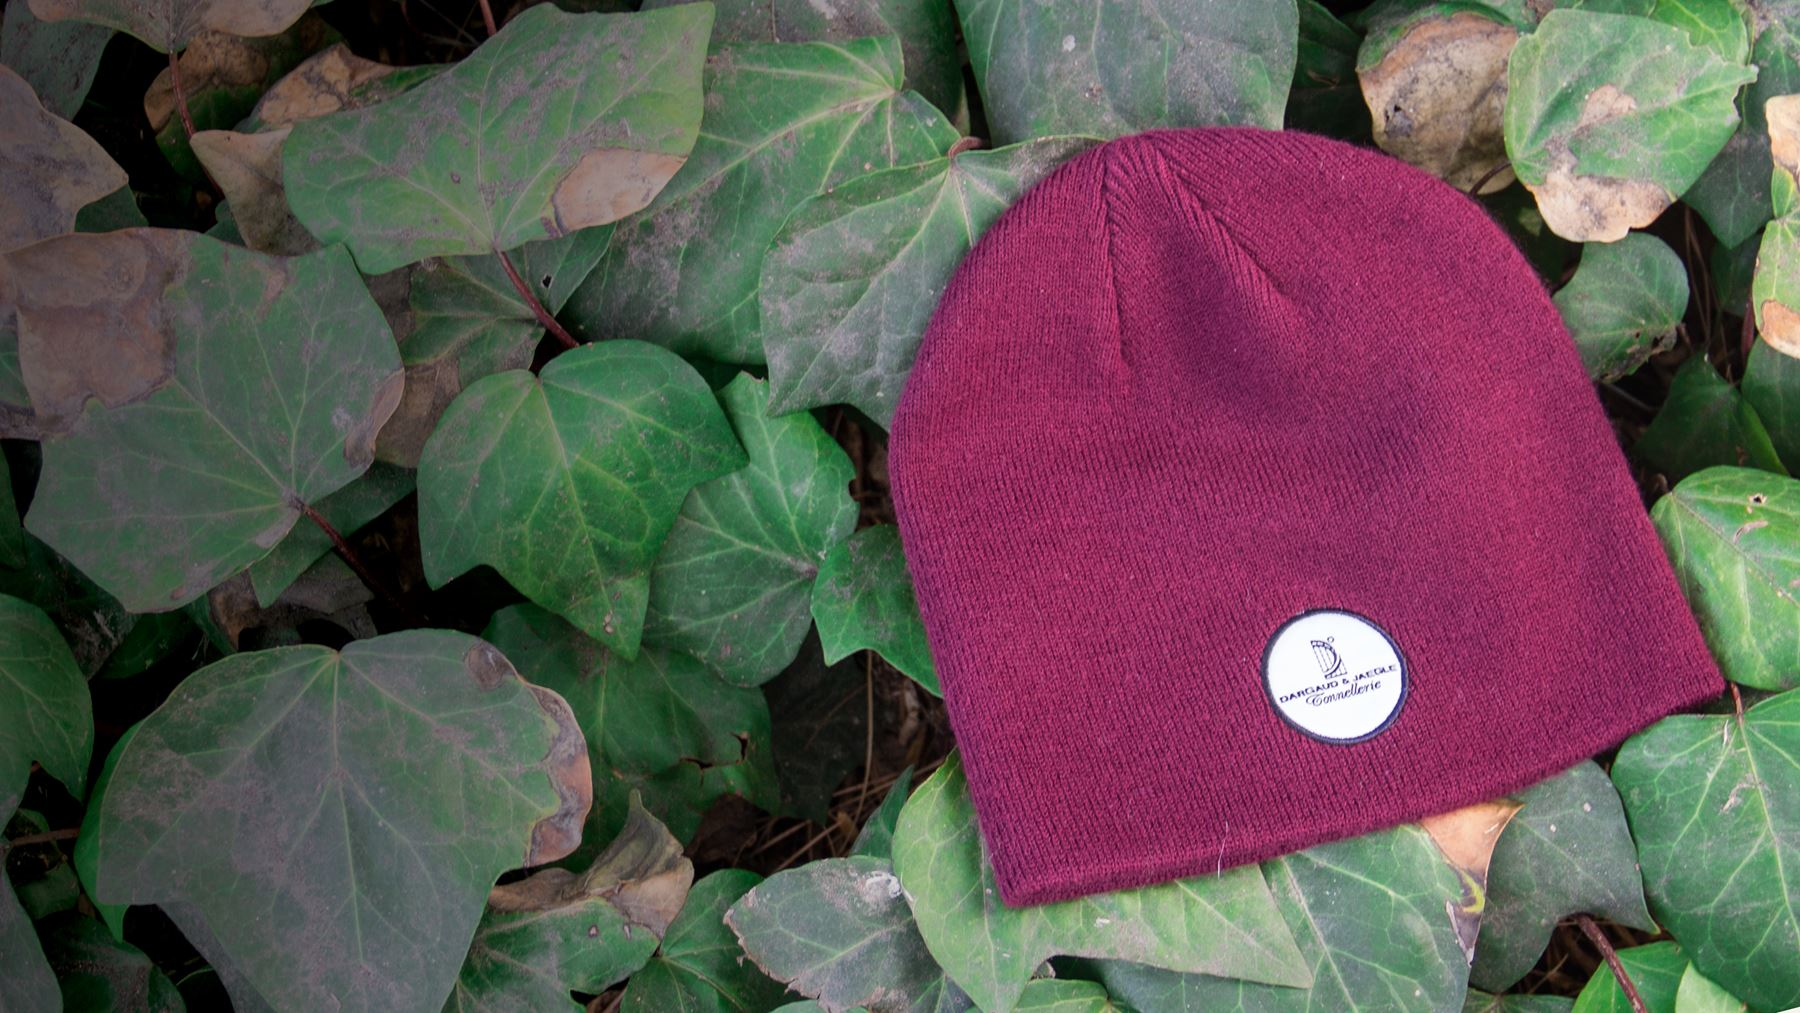 Skully / Beanie Knit hat laying on bed of green ivy